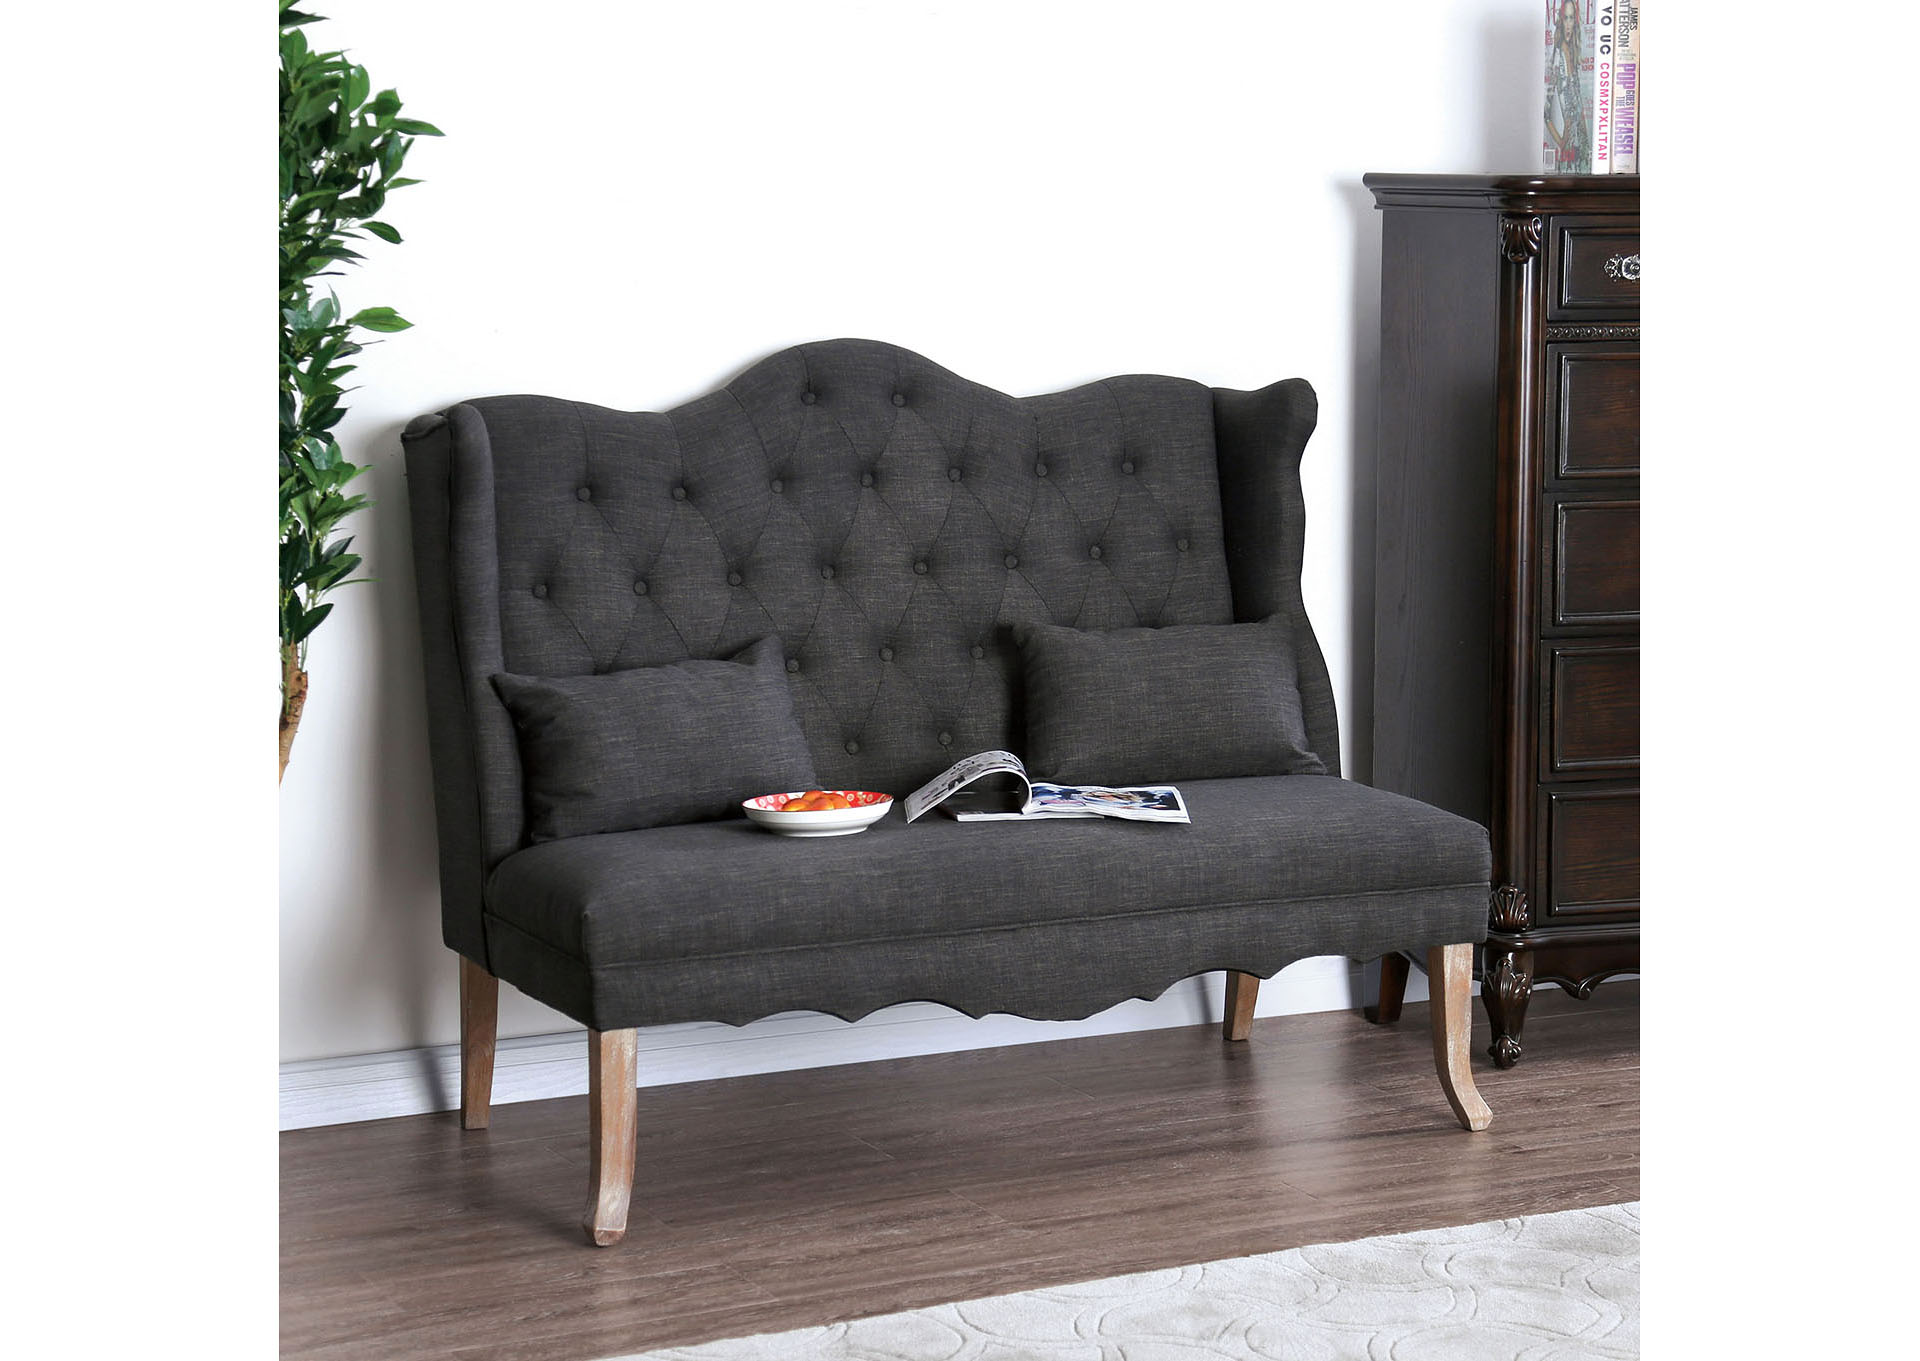 Donnelly Gray Linen Love Seat w/Pillows,Furniture of America